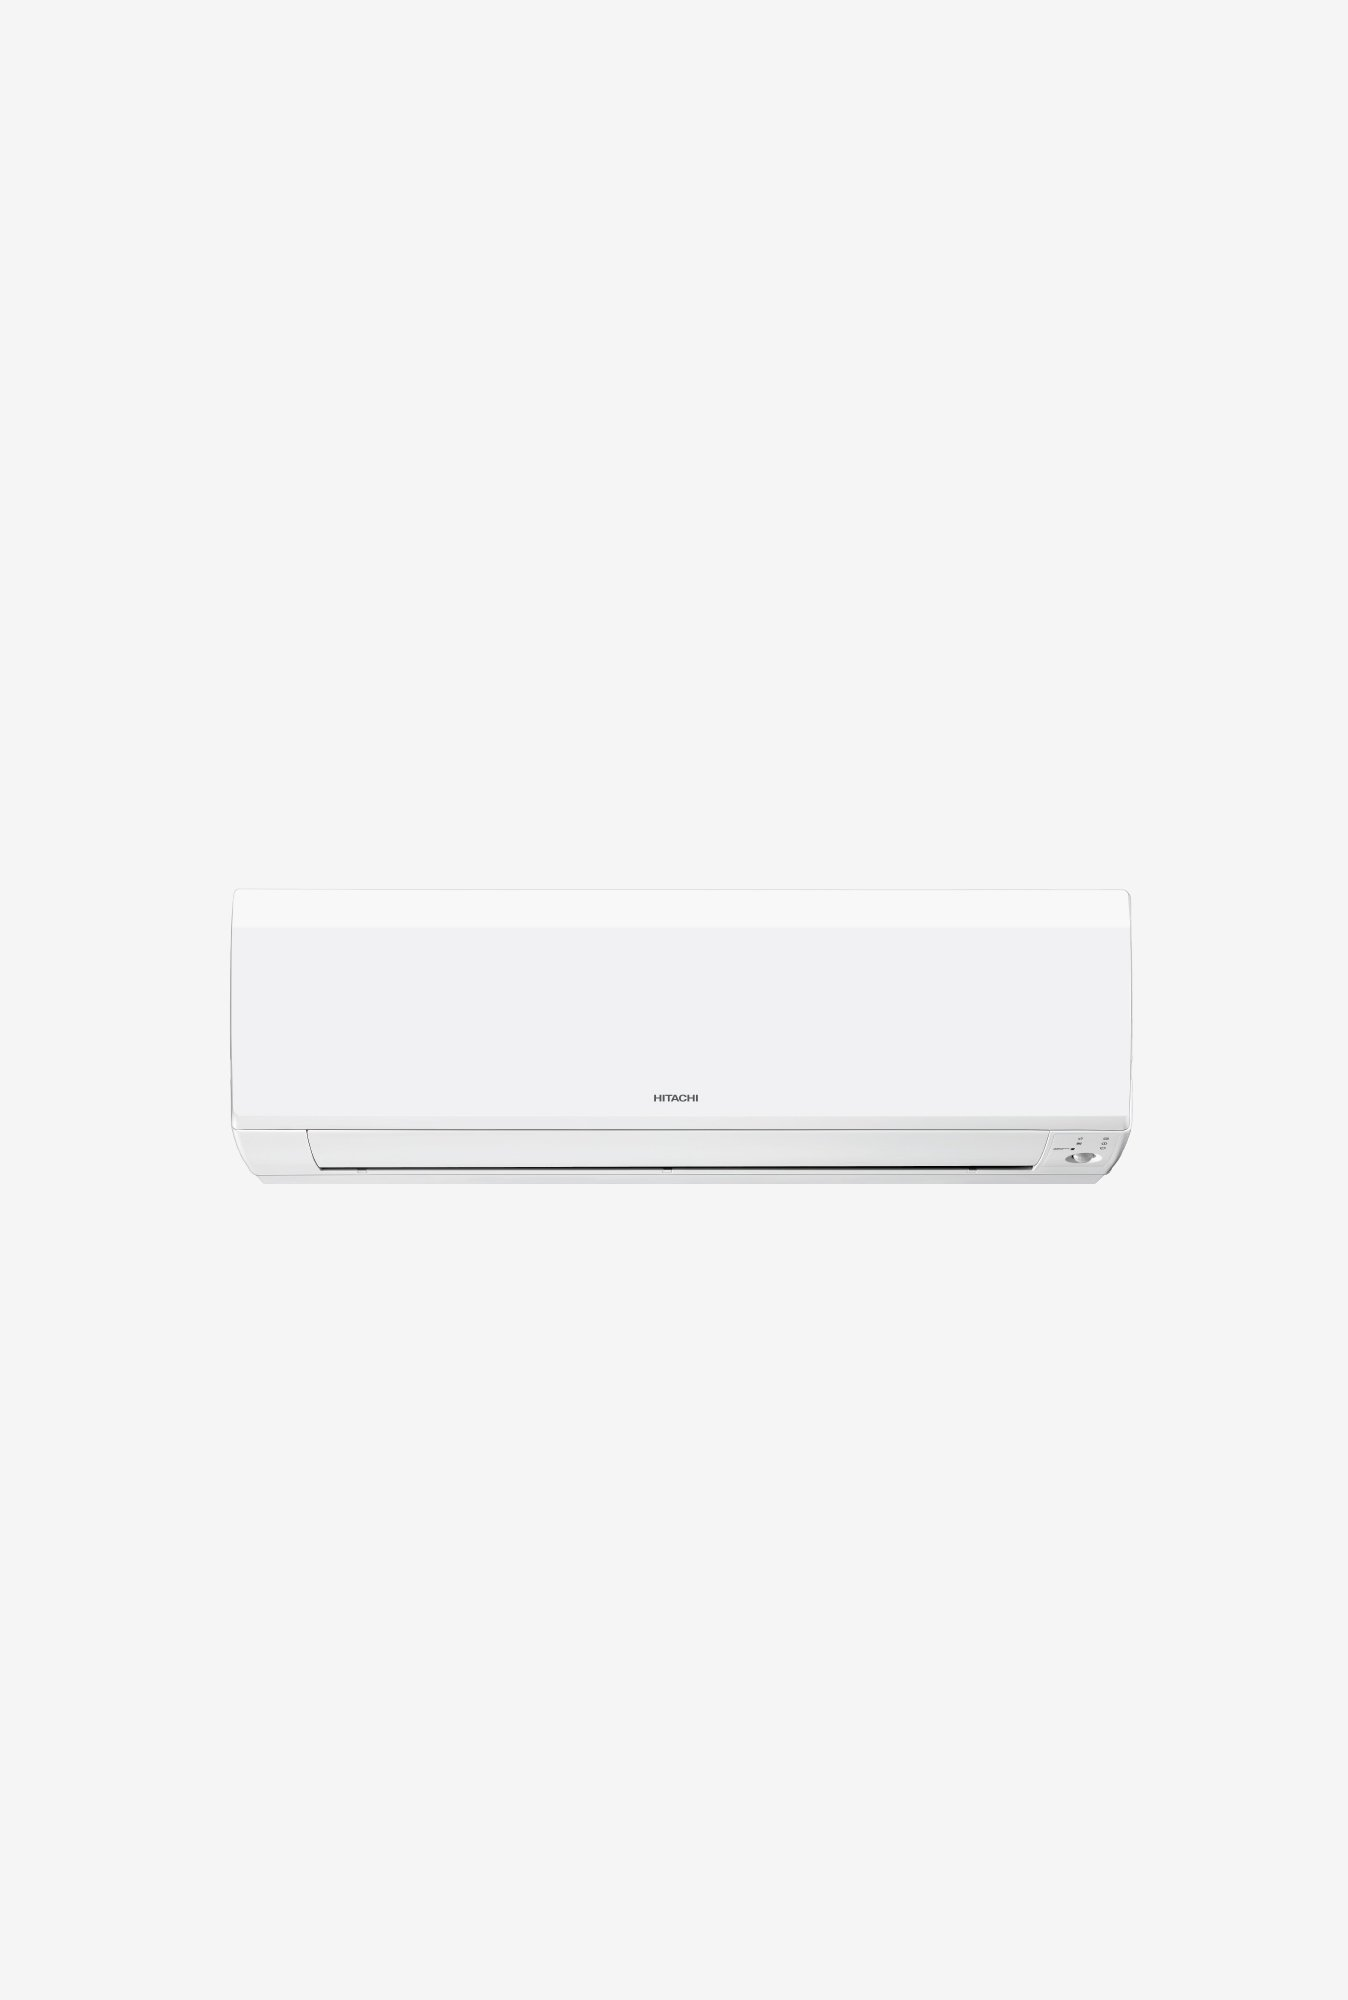 Hitachi Kashikoi 5200i 1 Ton 5 Star Inverter Split AC Copper